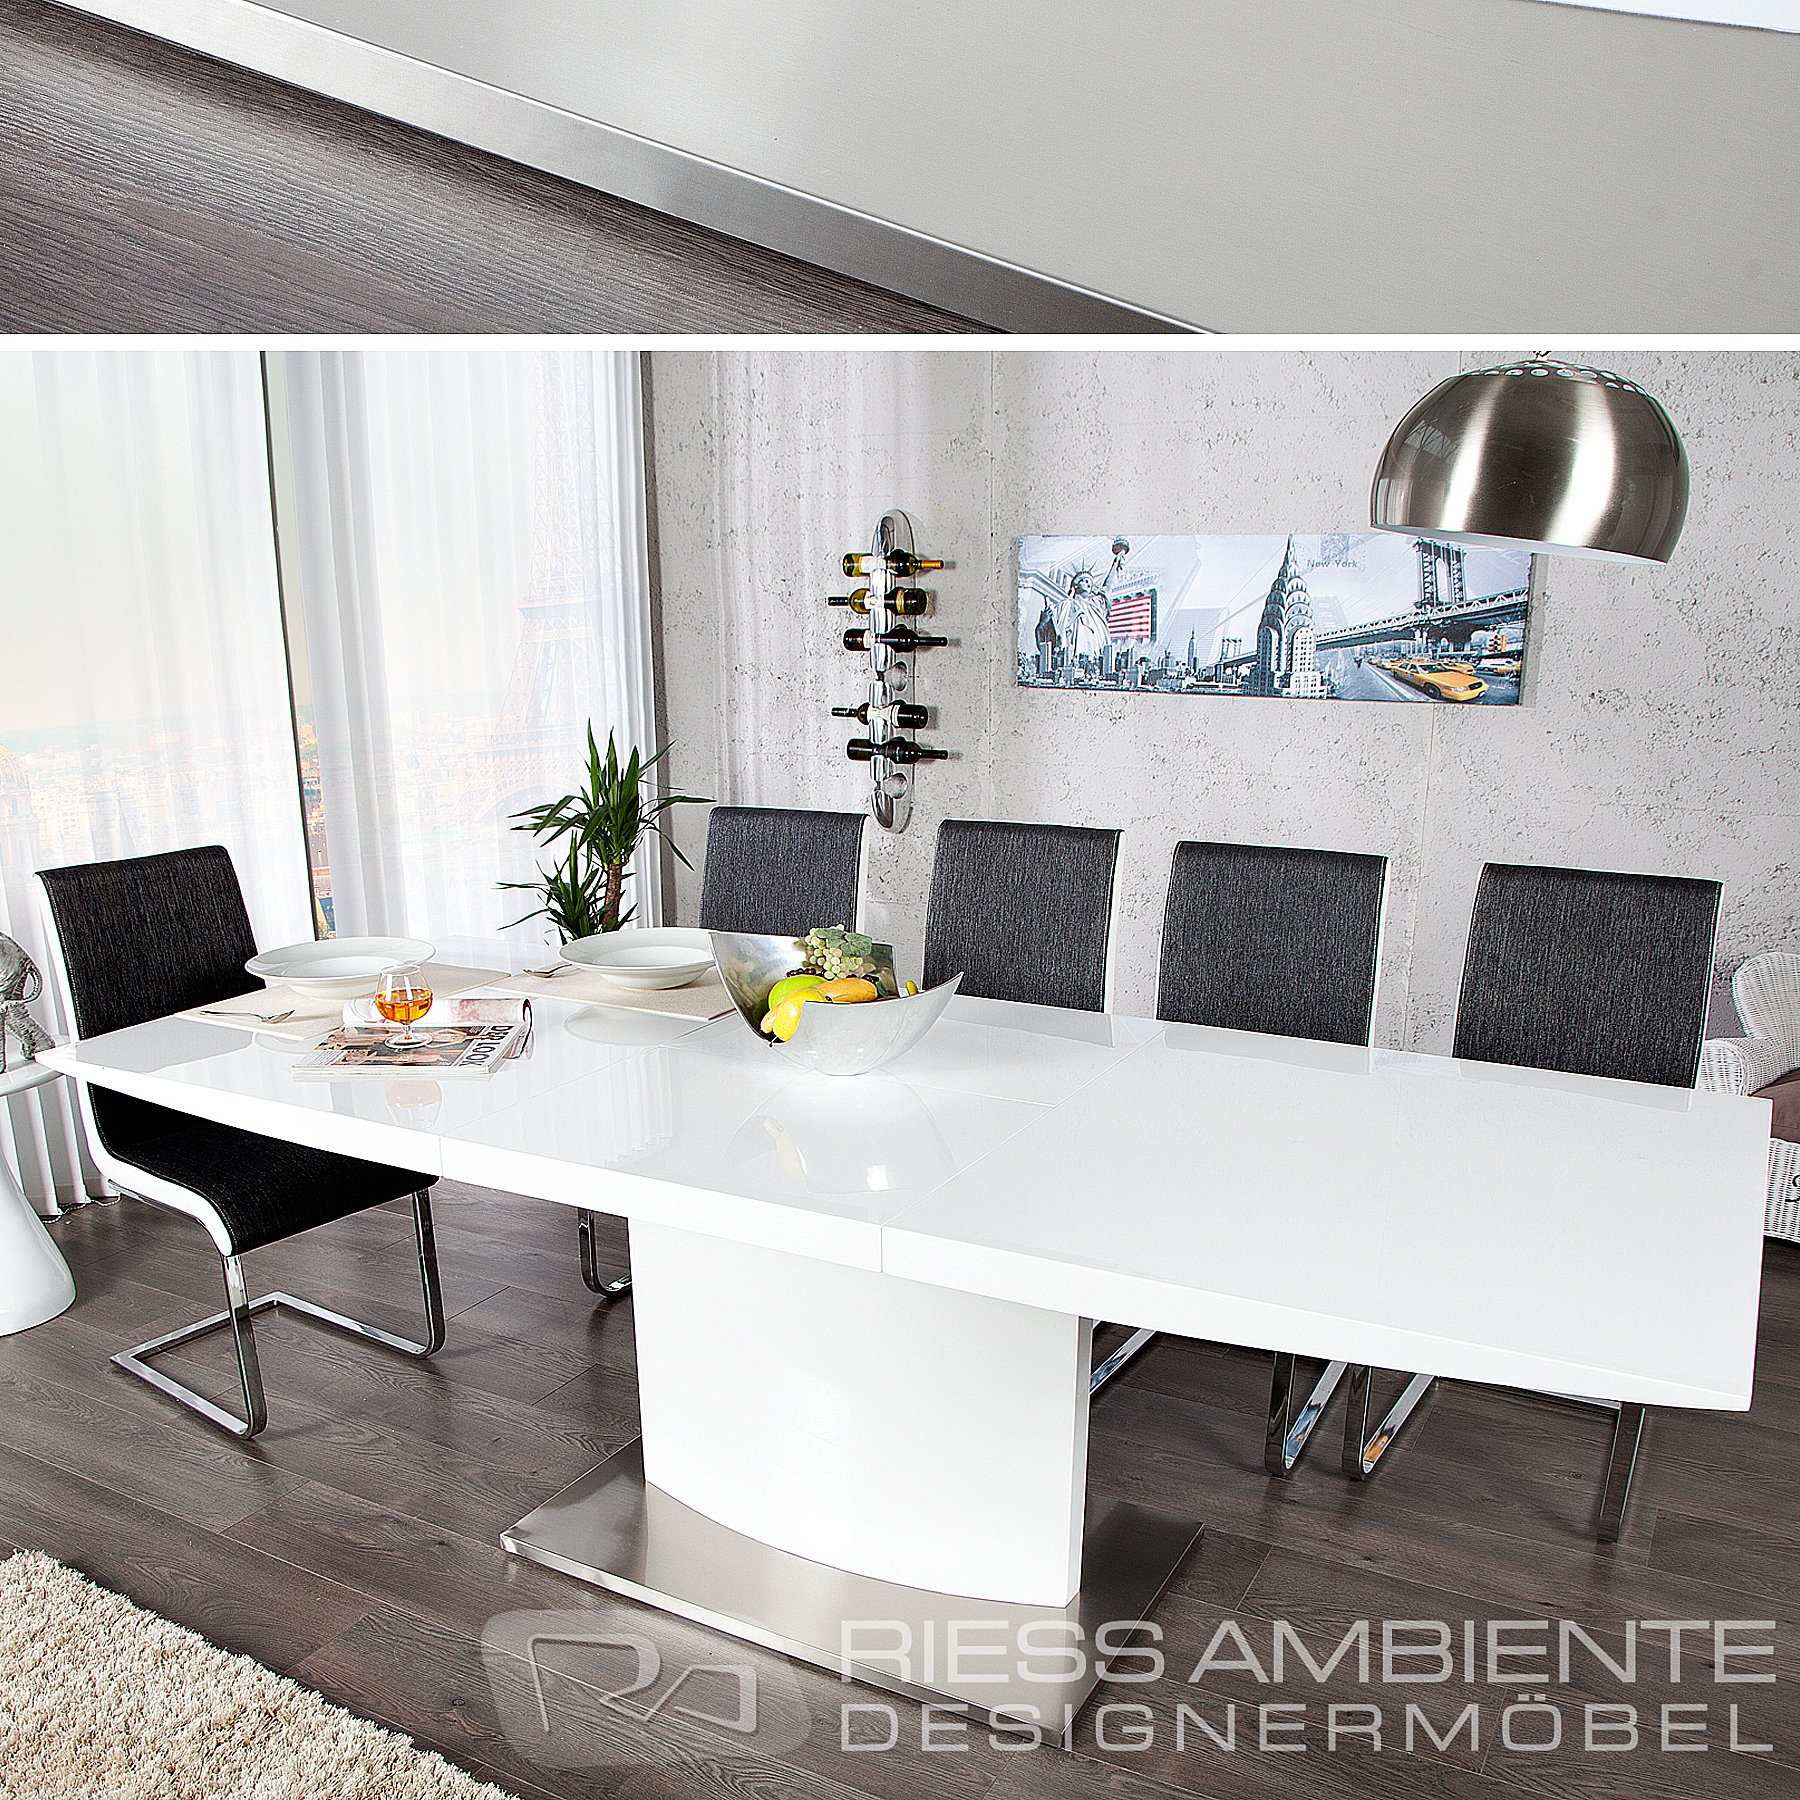 riess ambiente riess ambiente 53 foto 39 s 46 reviews meubelwinkels riess ambiente gutschein. Black Bedroom Furniture Sets. Home Design Ideas